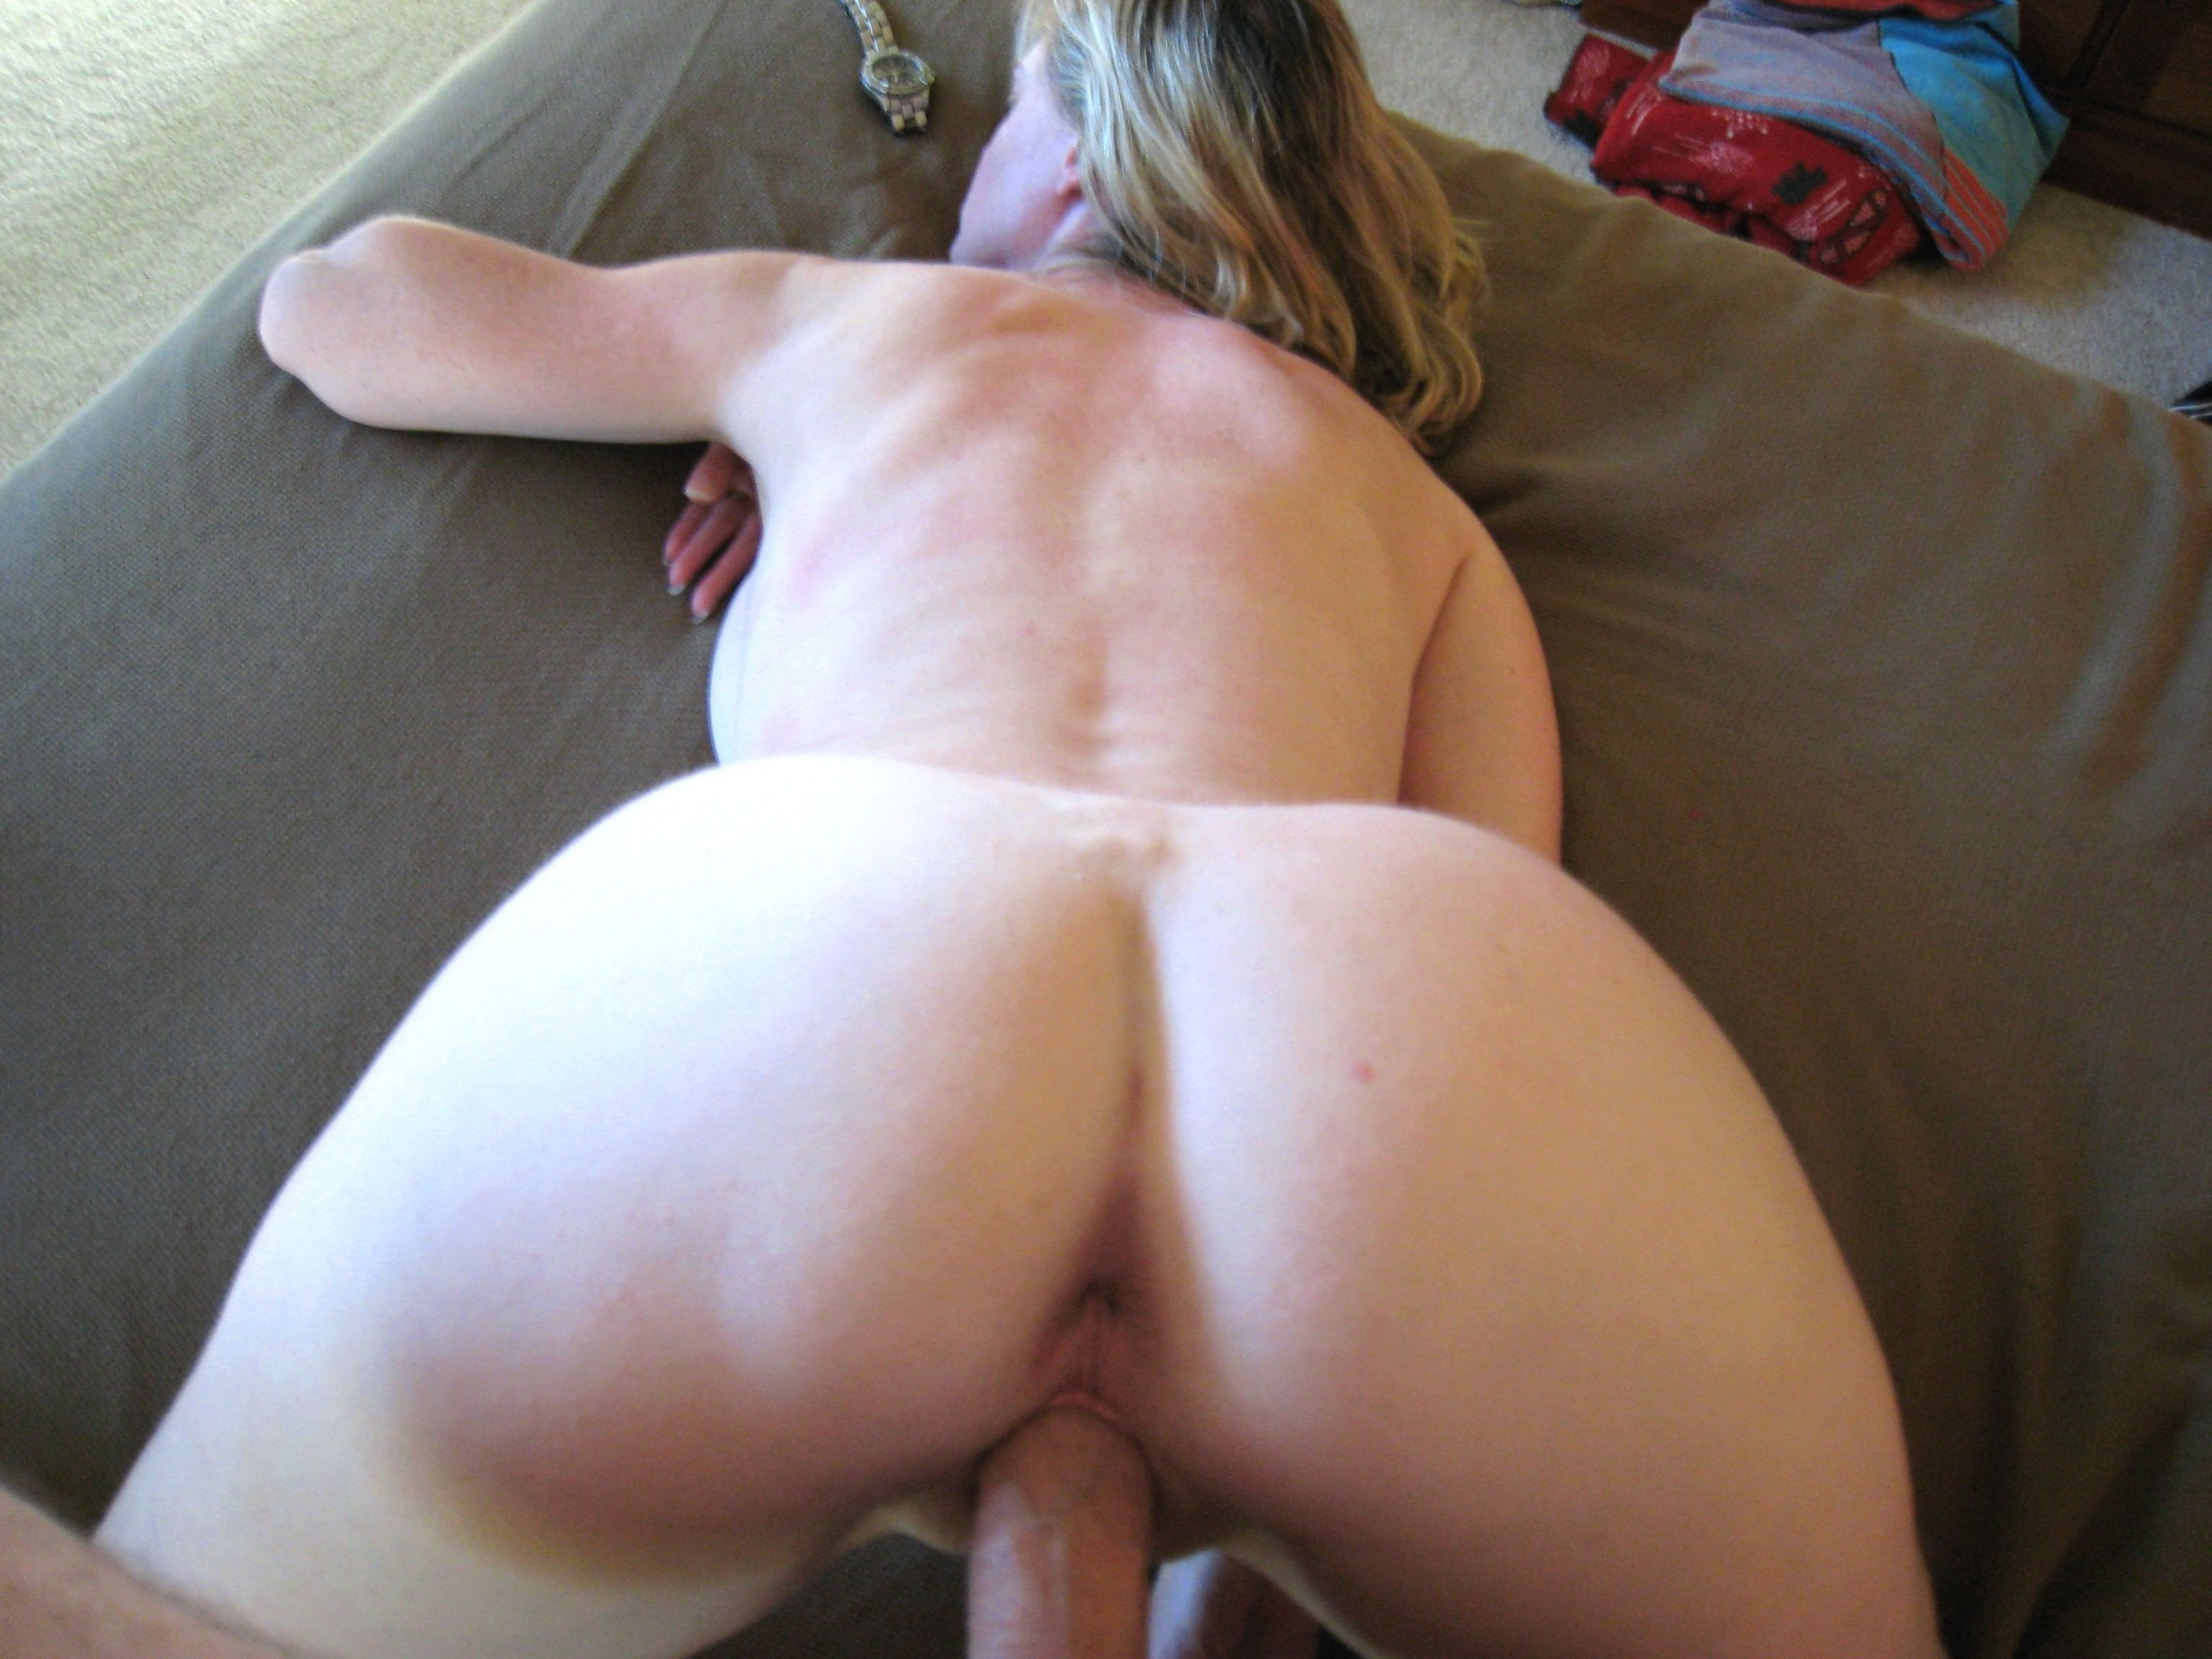 milf from behind with sex pics